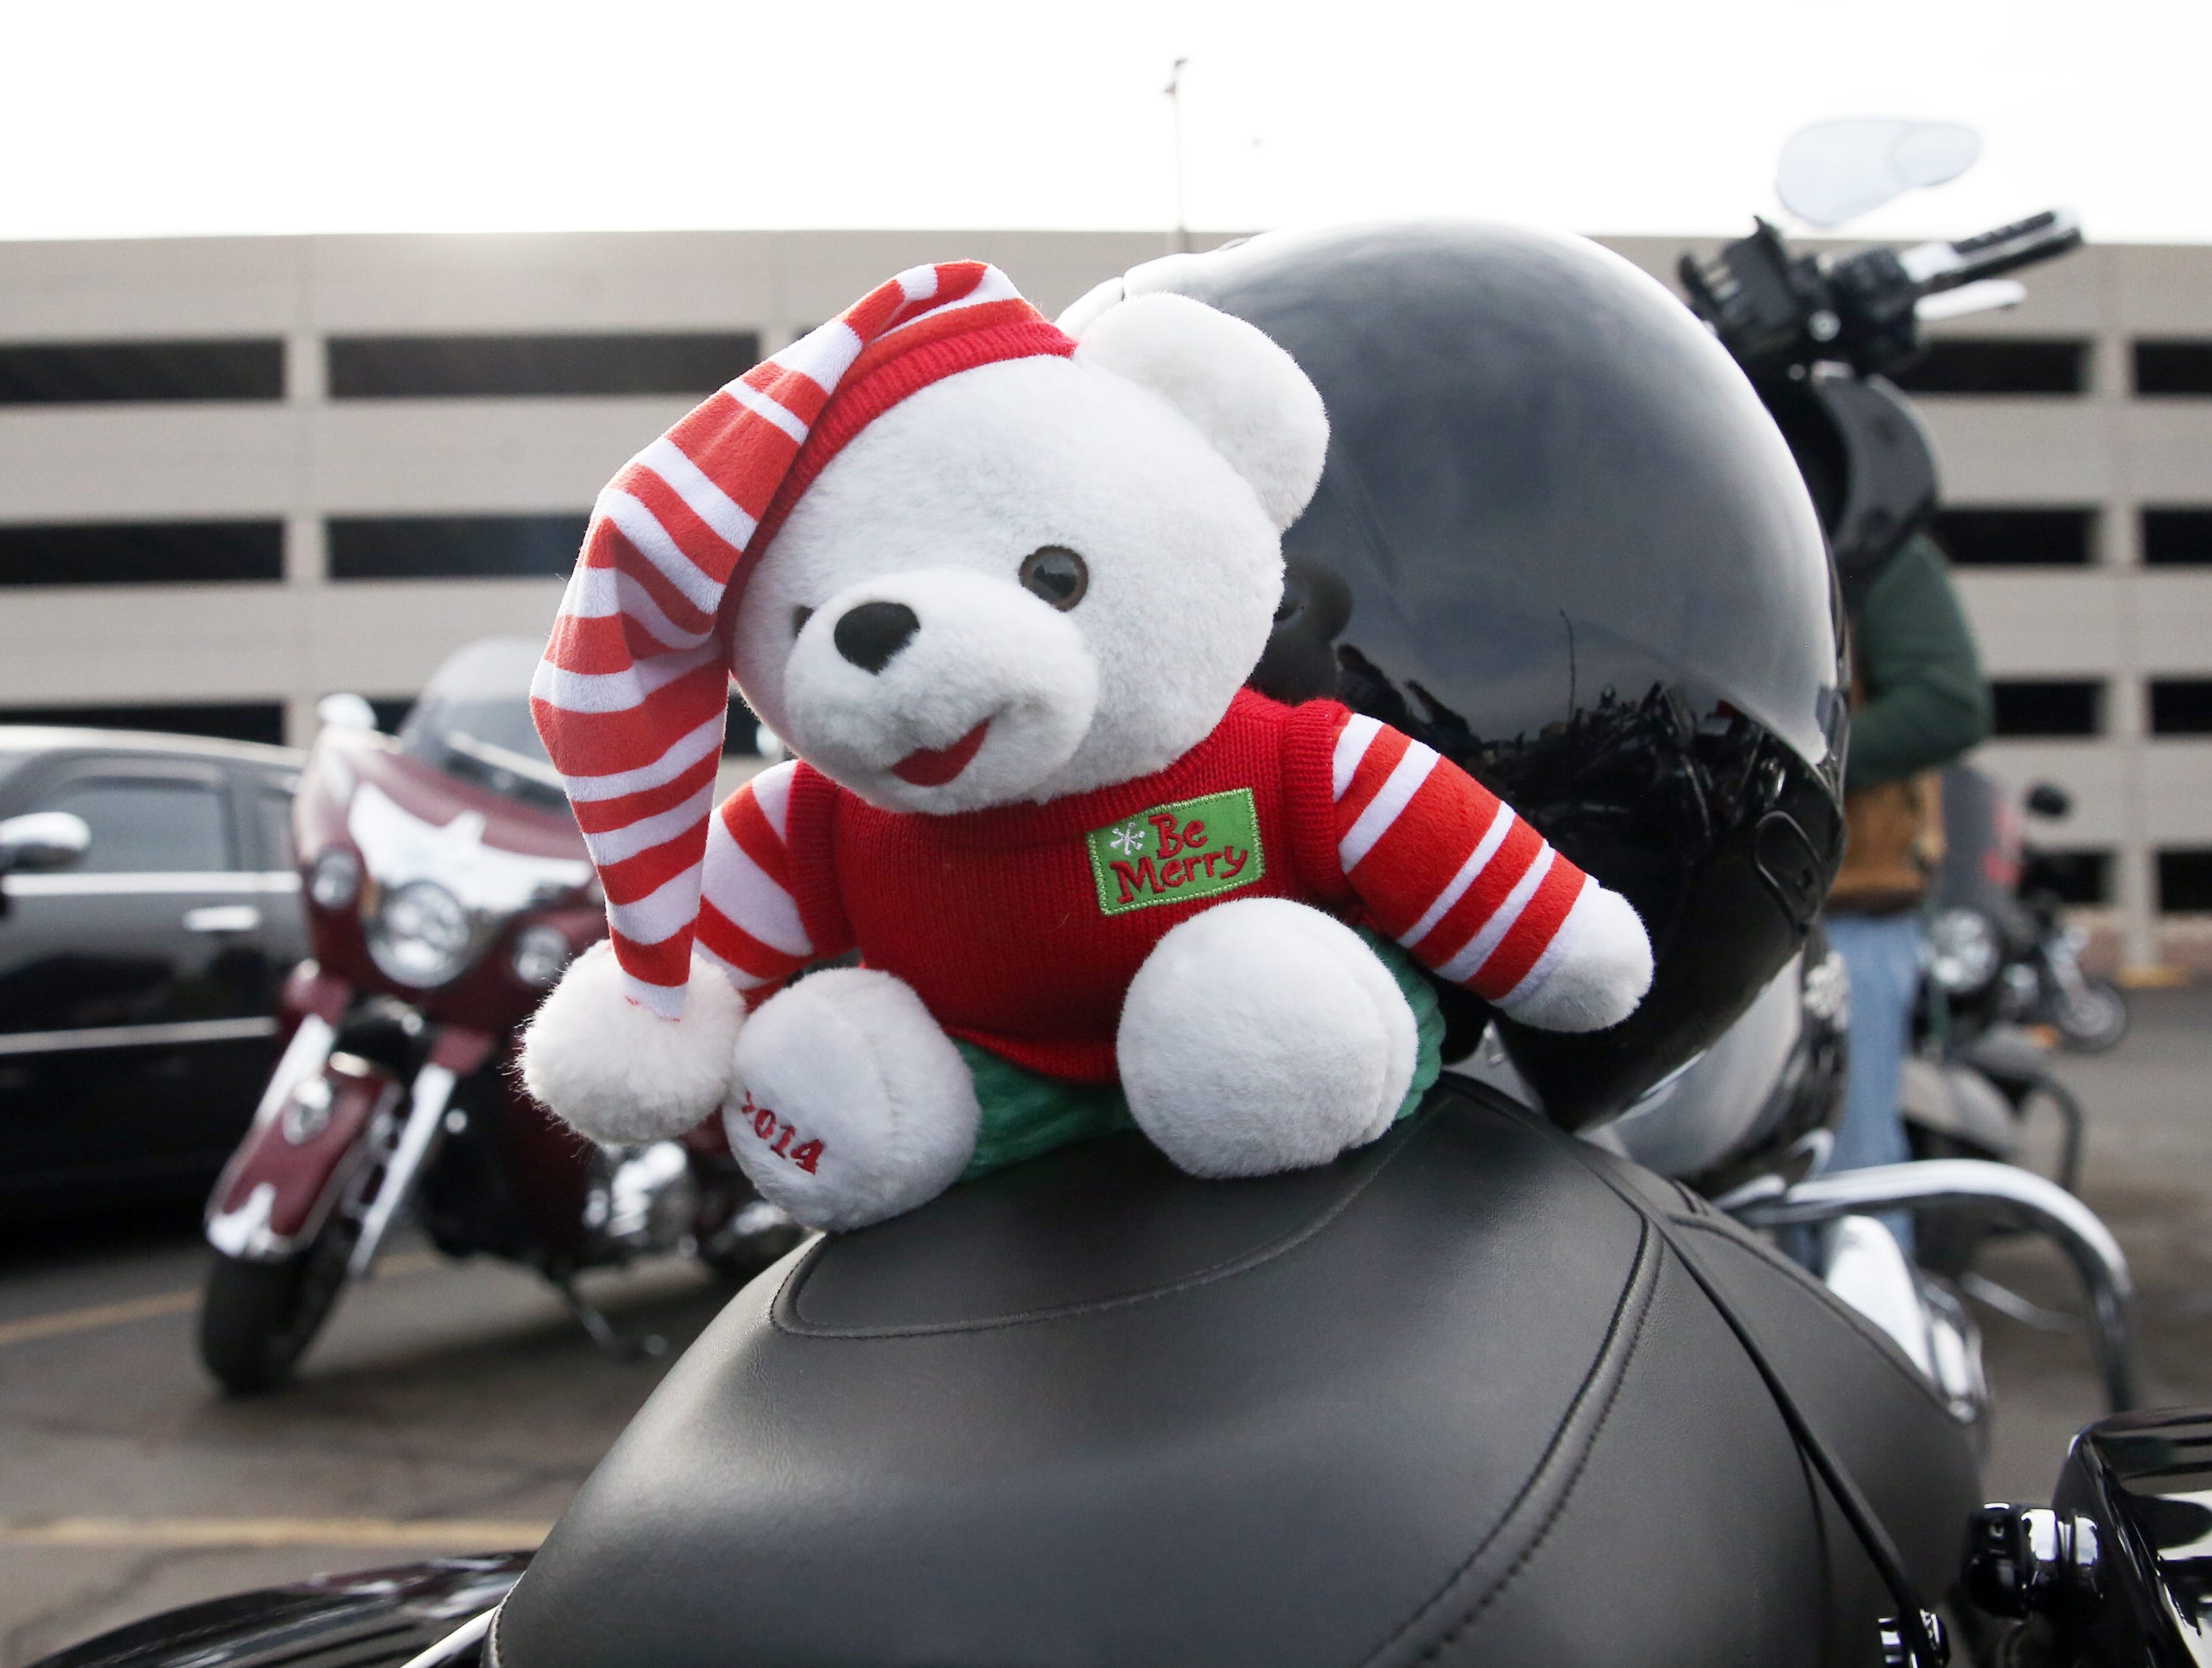 As is their tradition the last 36 years, the El Paso Motorcycle Coalition delivered toys they collected for hospitalized children on Christmas Day.